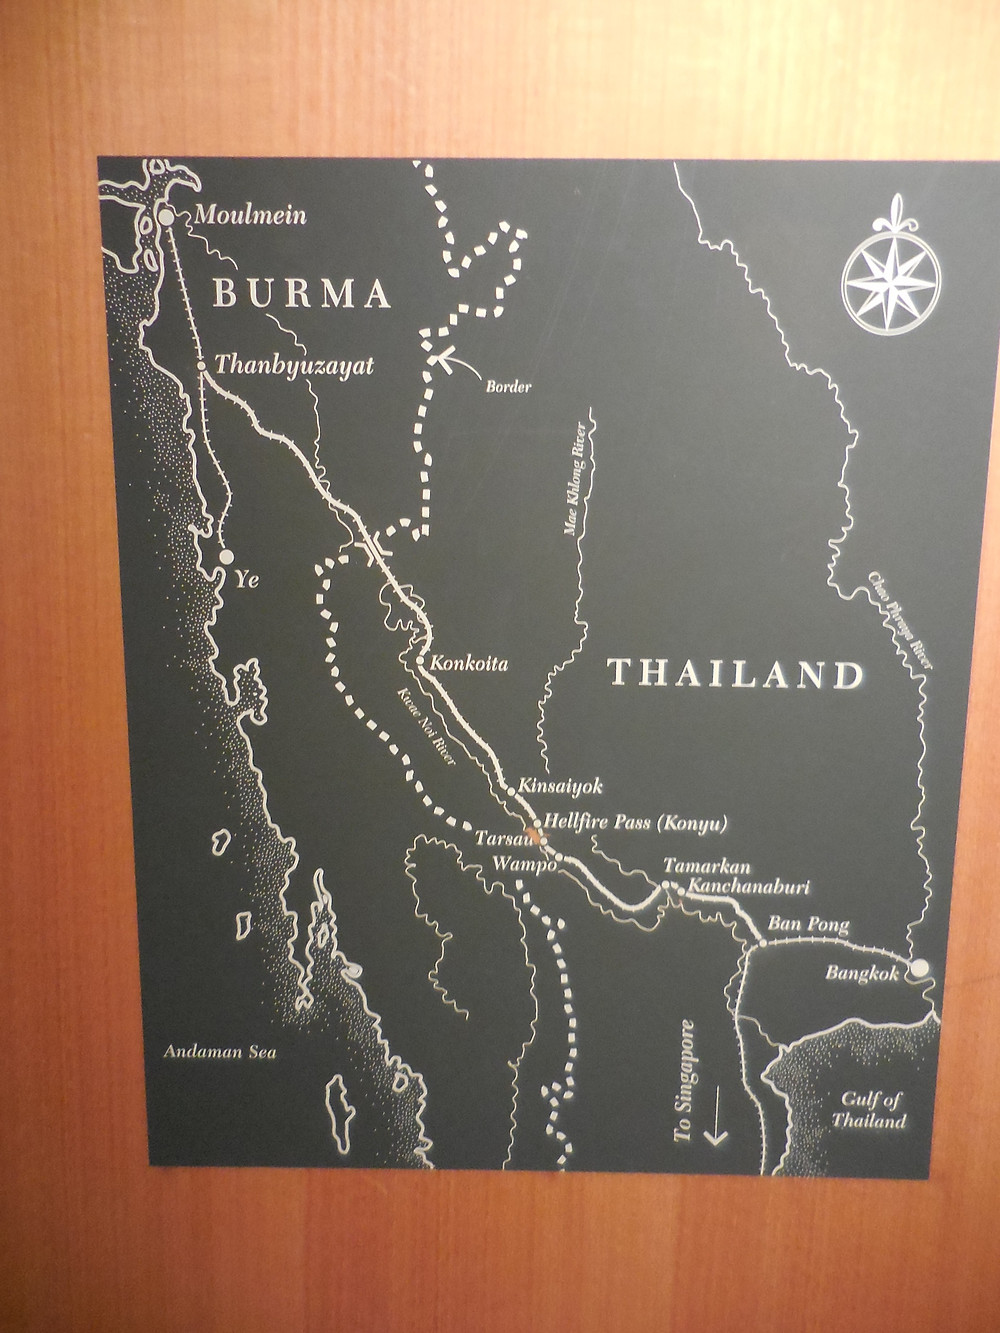 The railway crossed between Thailand and Burma (present day Myanmar)